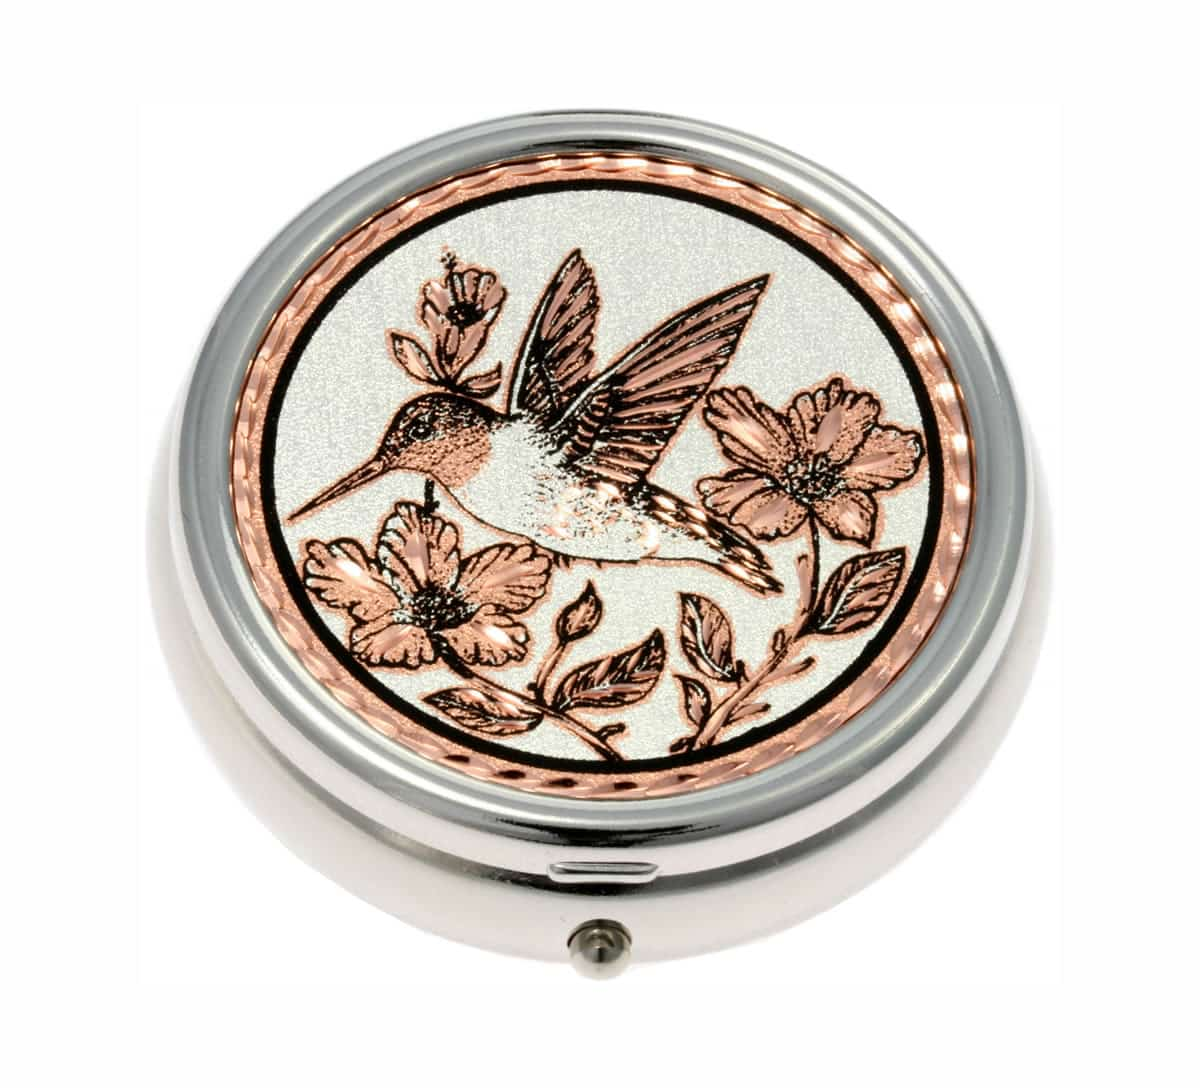 Silver Color Pill Boxes Embellished with Hummingbird Copper Artwork